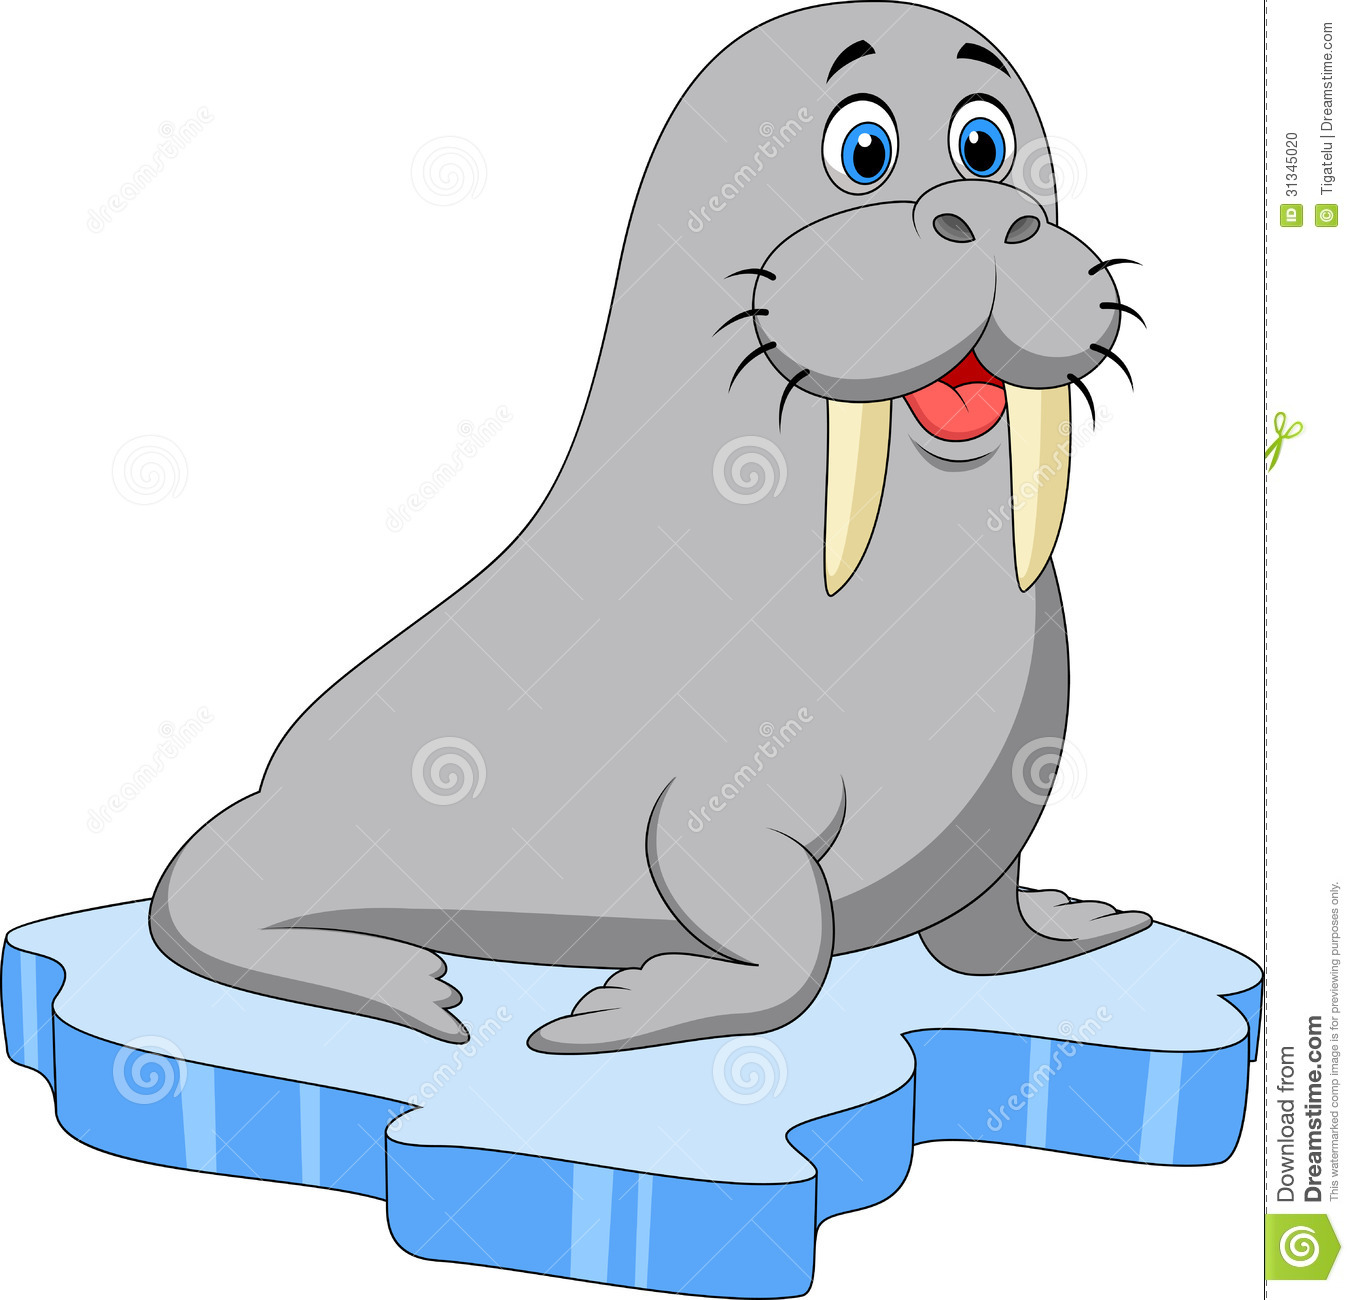 Fat walrus cartoon - photo#7